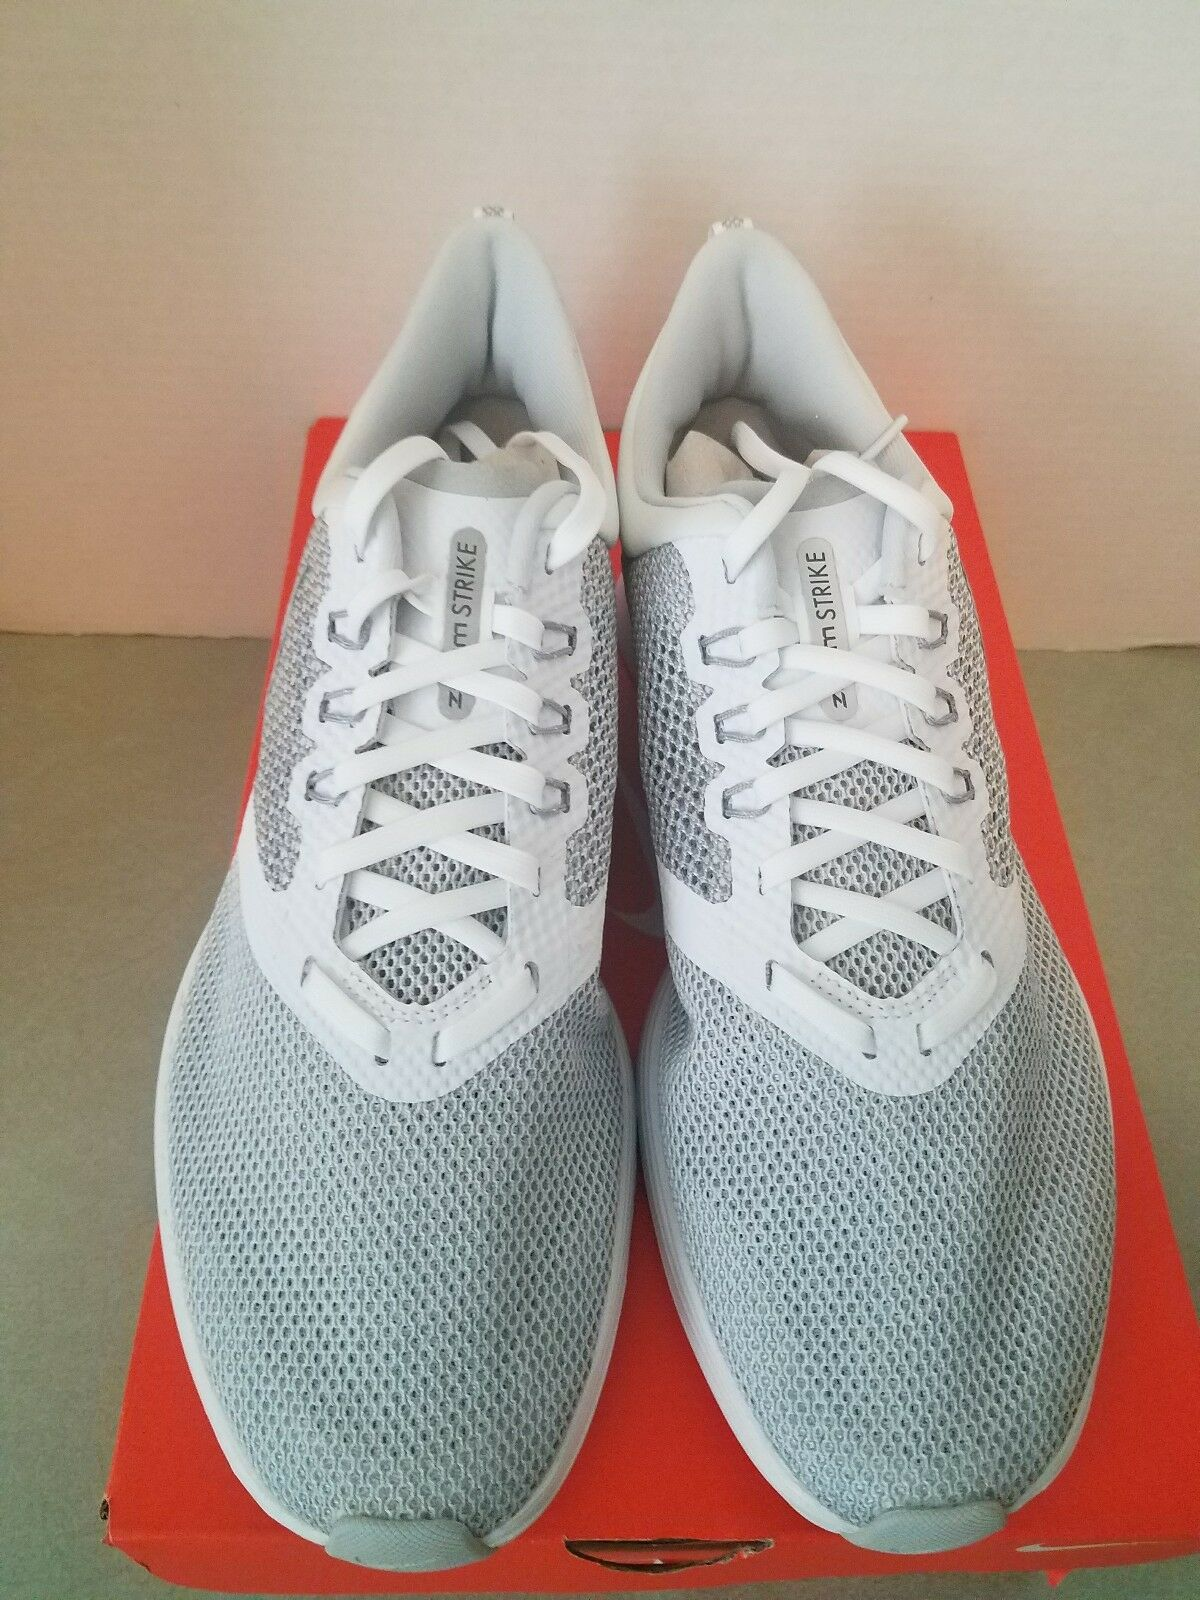 NIKE ZOOM STRIKE NEW IN BOX MEN'S RUNNING SHOES WOLF GREY WHITE REFLECTIVE 10